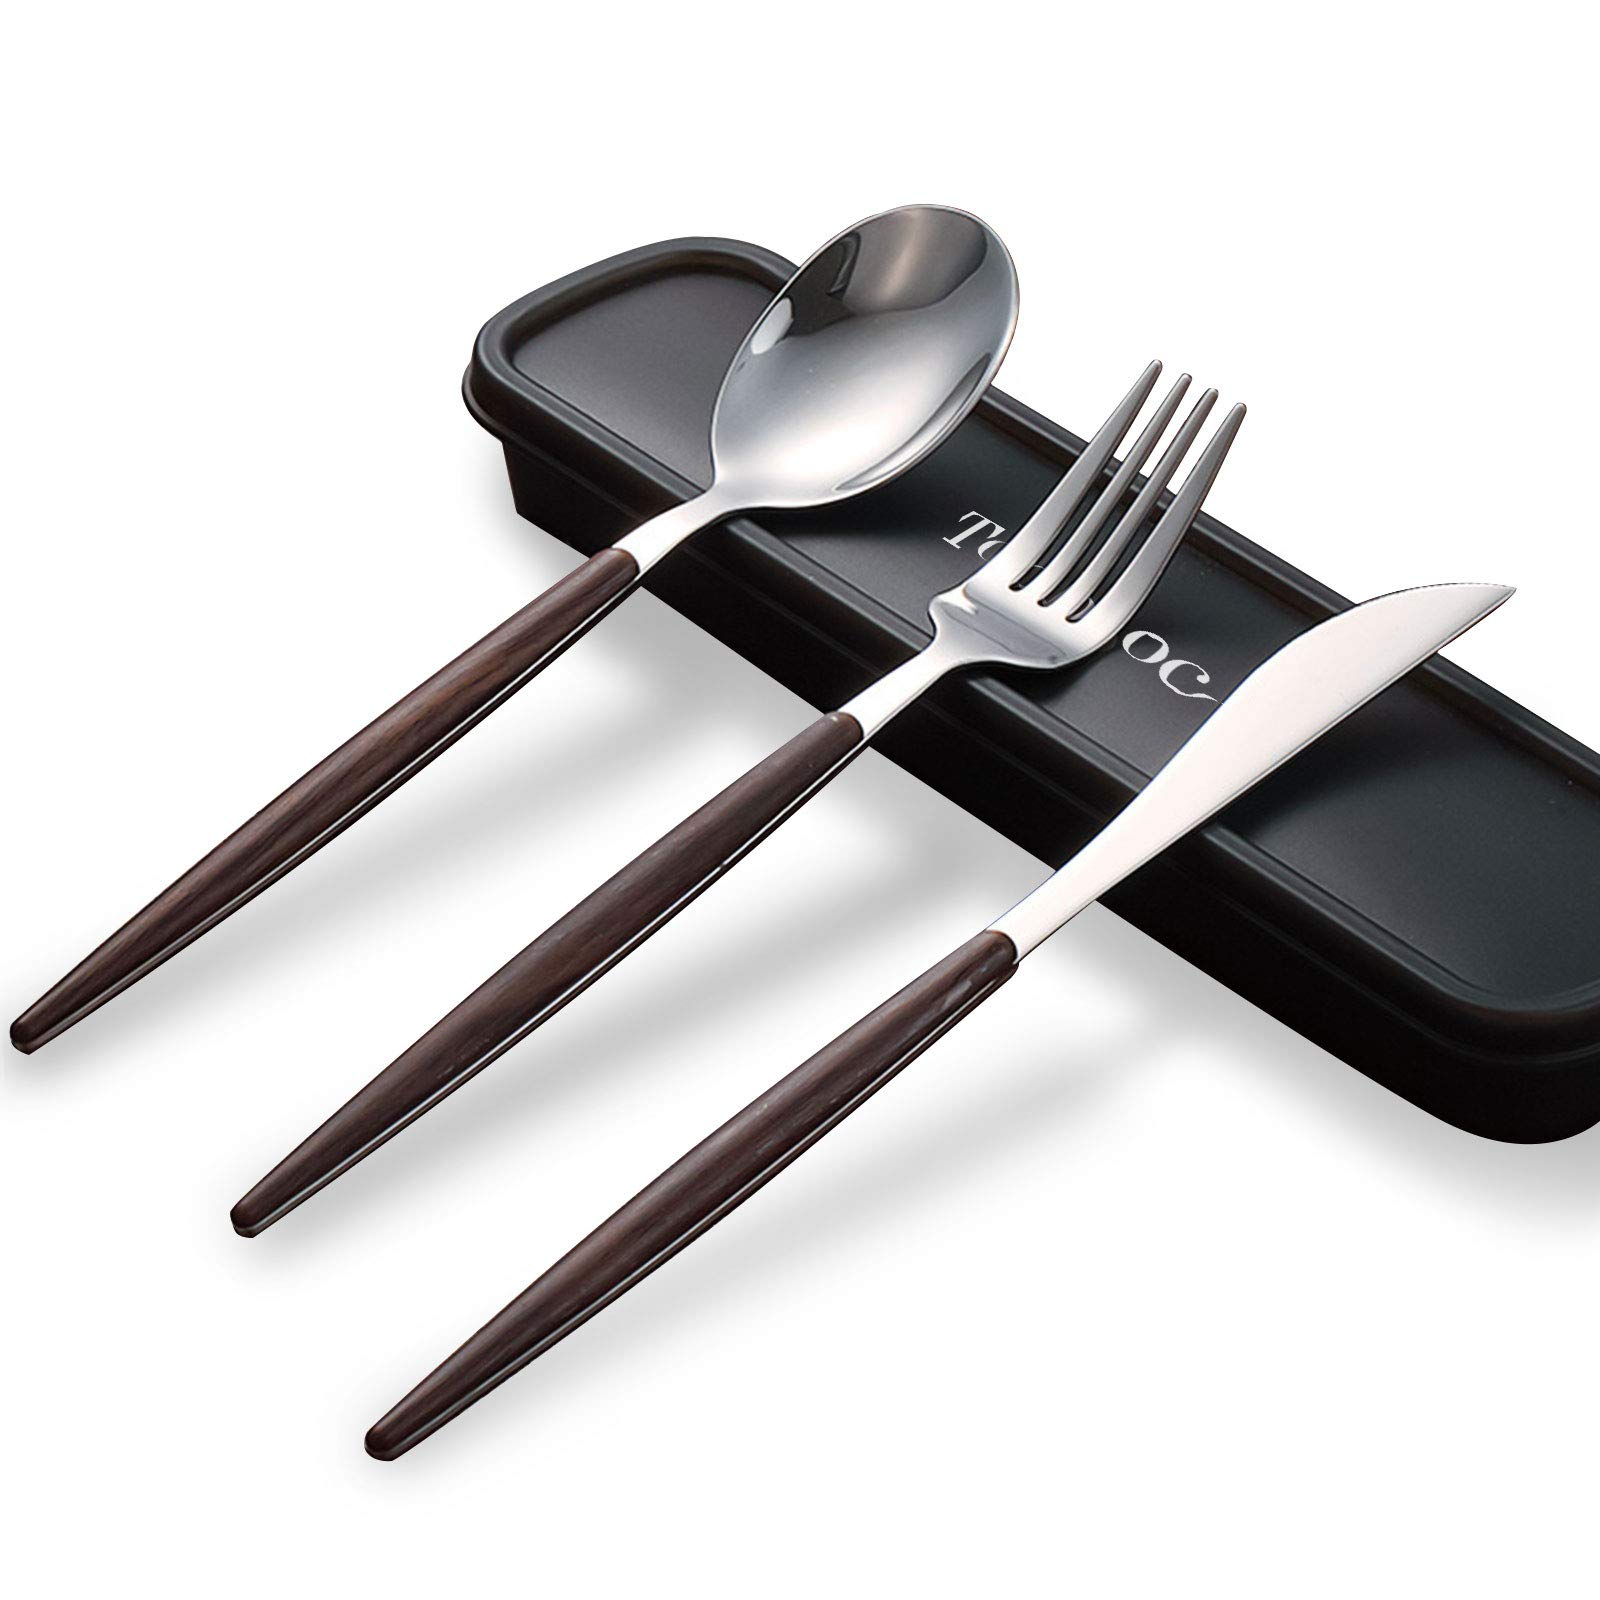 2 sets Wood Handle Flatware Sets Knife Fork Spoon Stainless Steel & Wanut Wood Flatware Set Portable Travel Silverware Dinnerware Set with a Organizer box (2 sets)